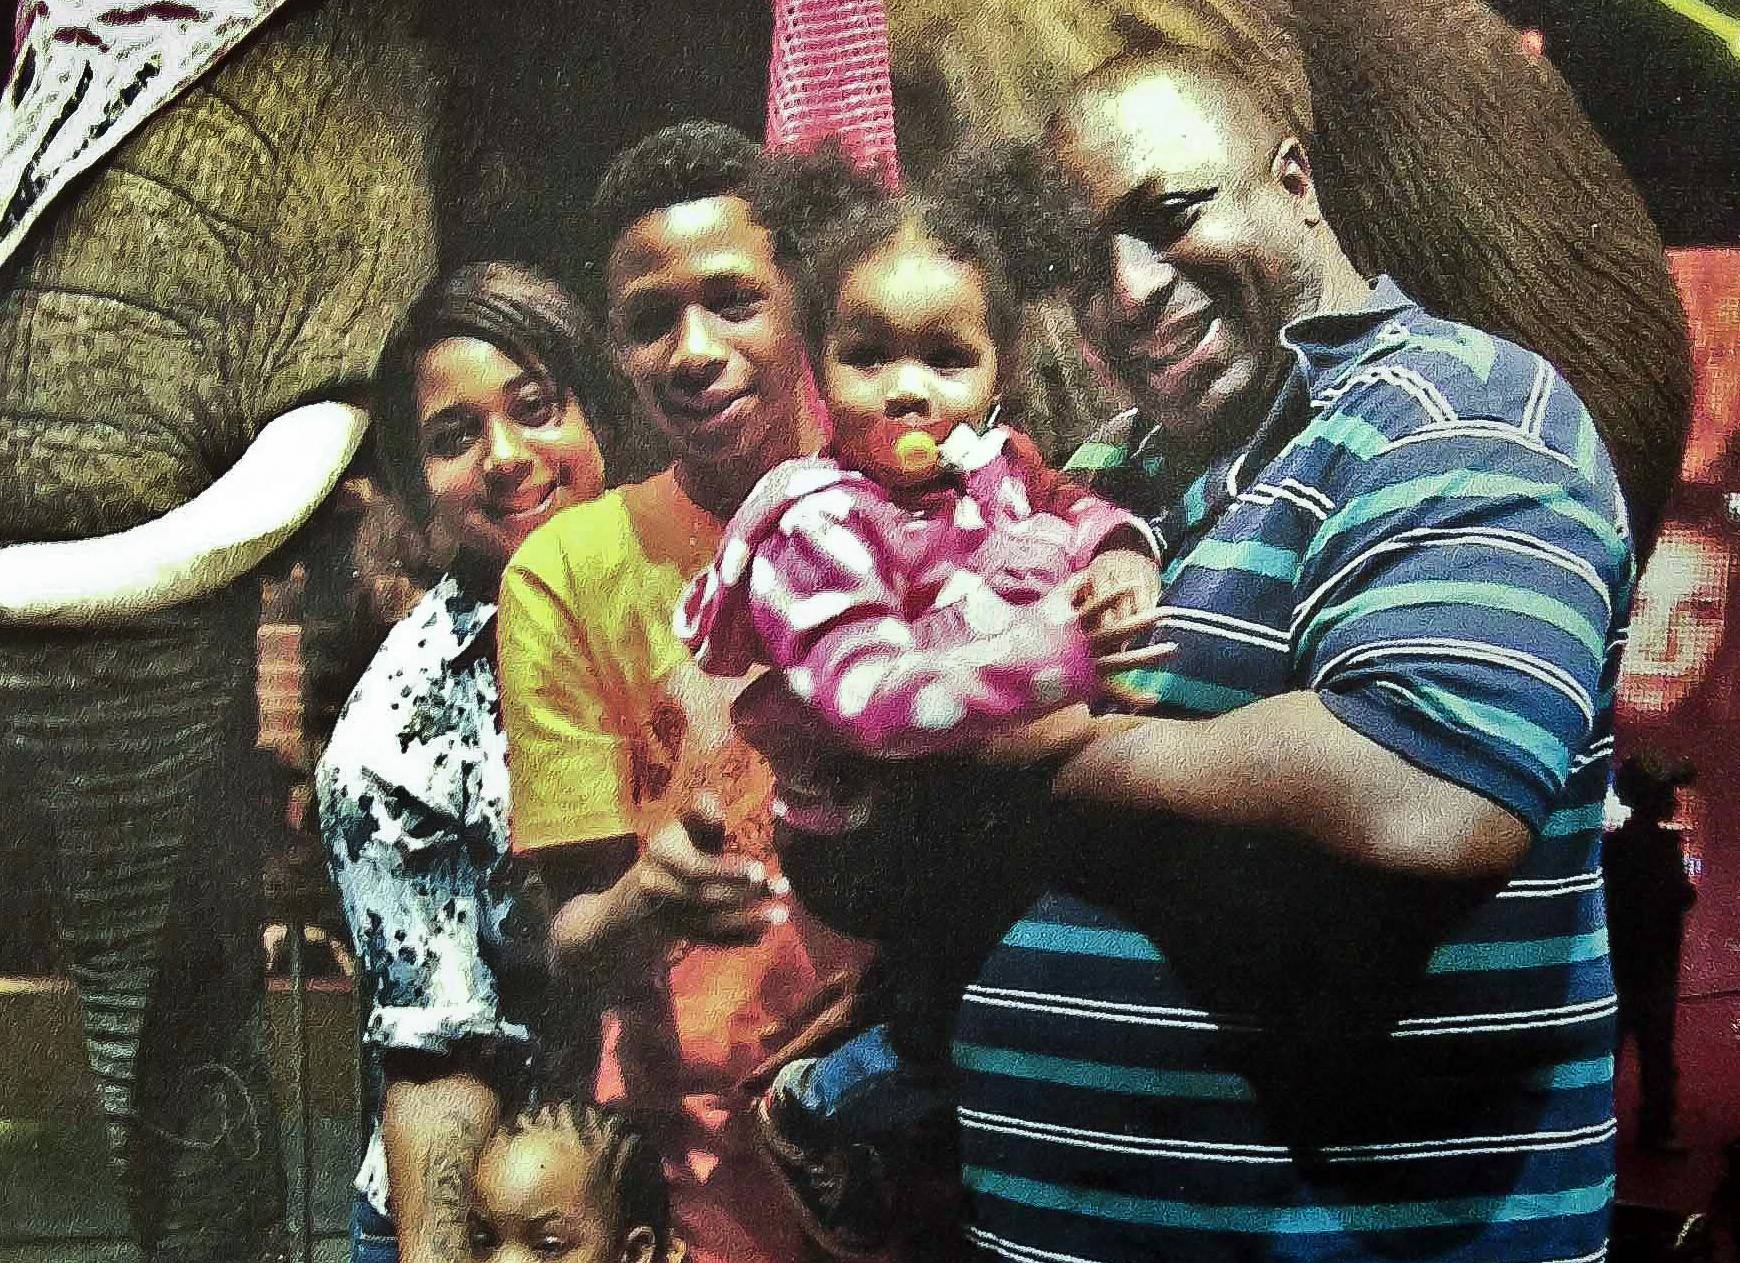 Editorial: The disquieting death of Eric Garner